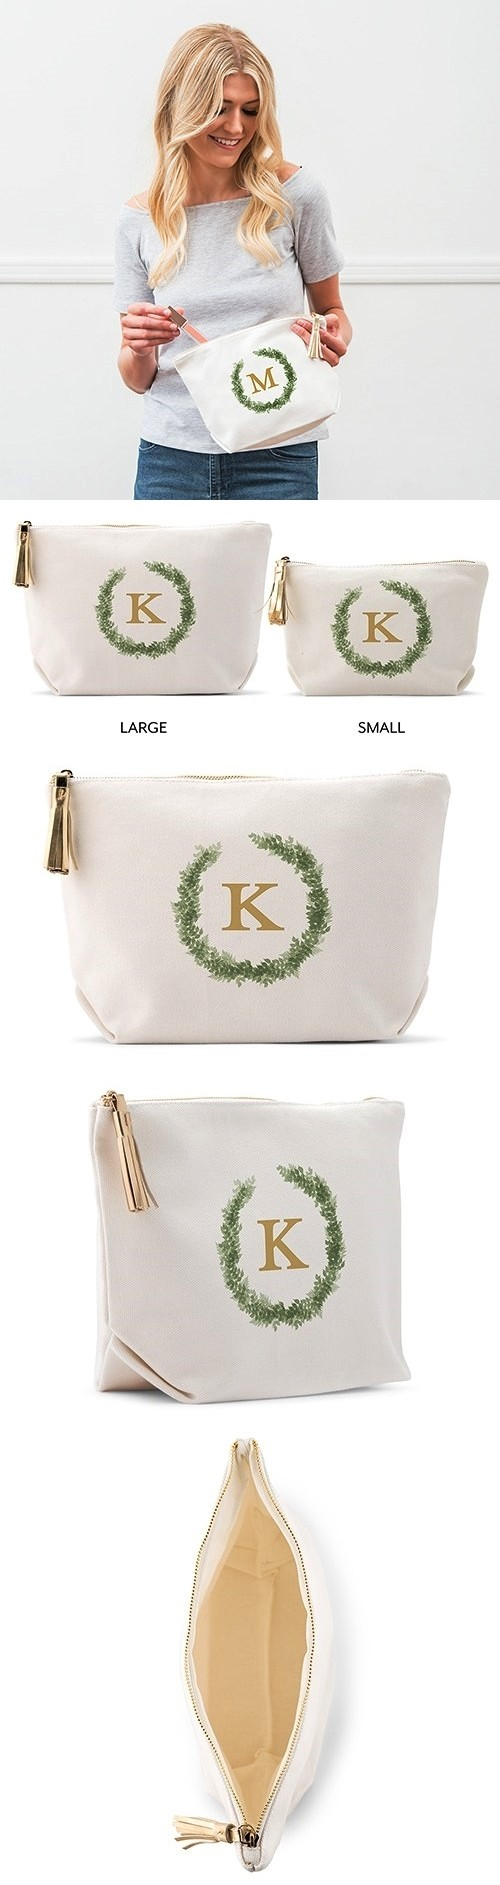 Weddingstar Love Wreath Monogram Personalized White Canvas Makeup Bag